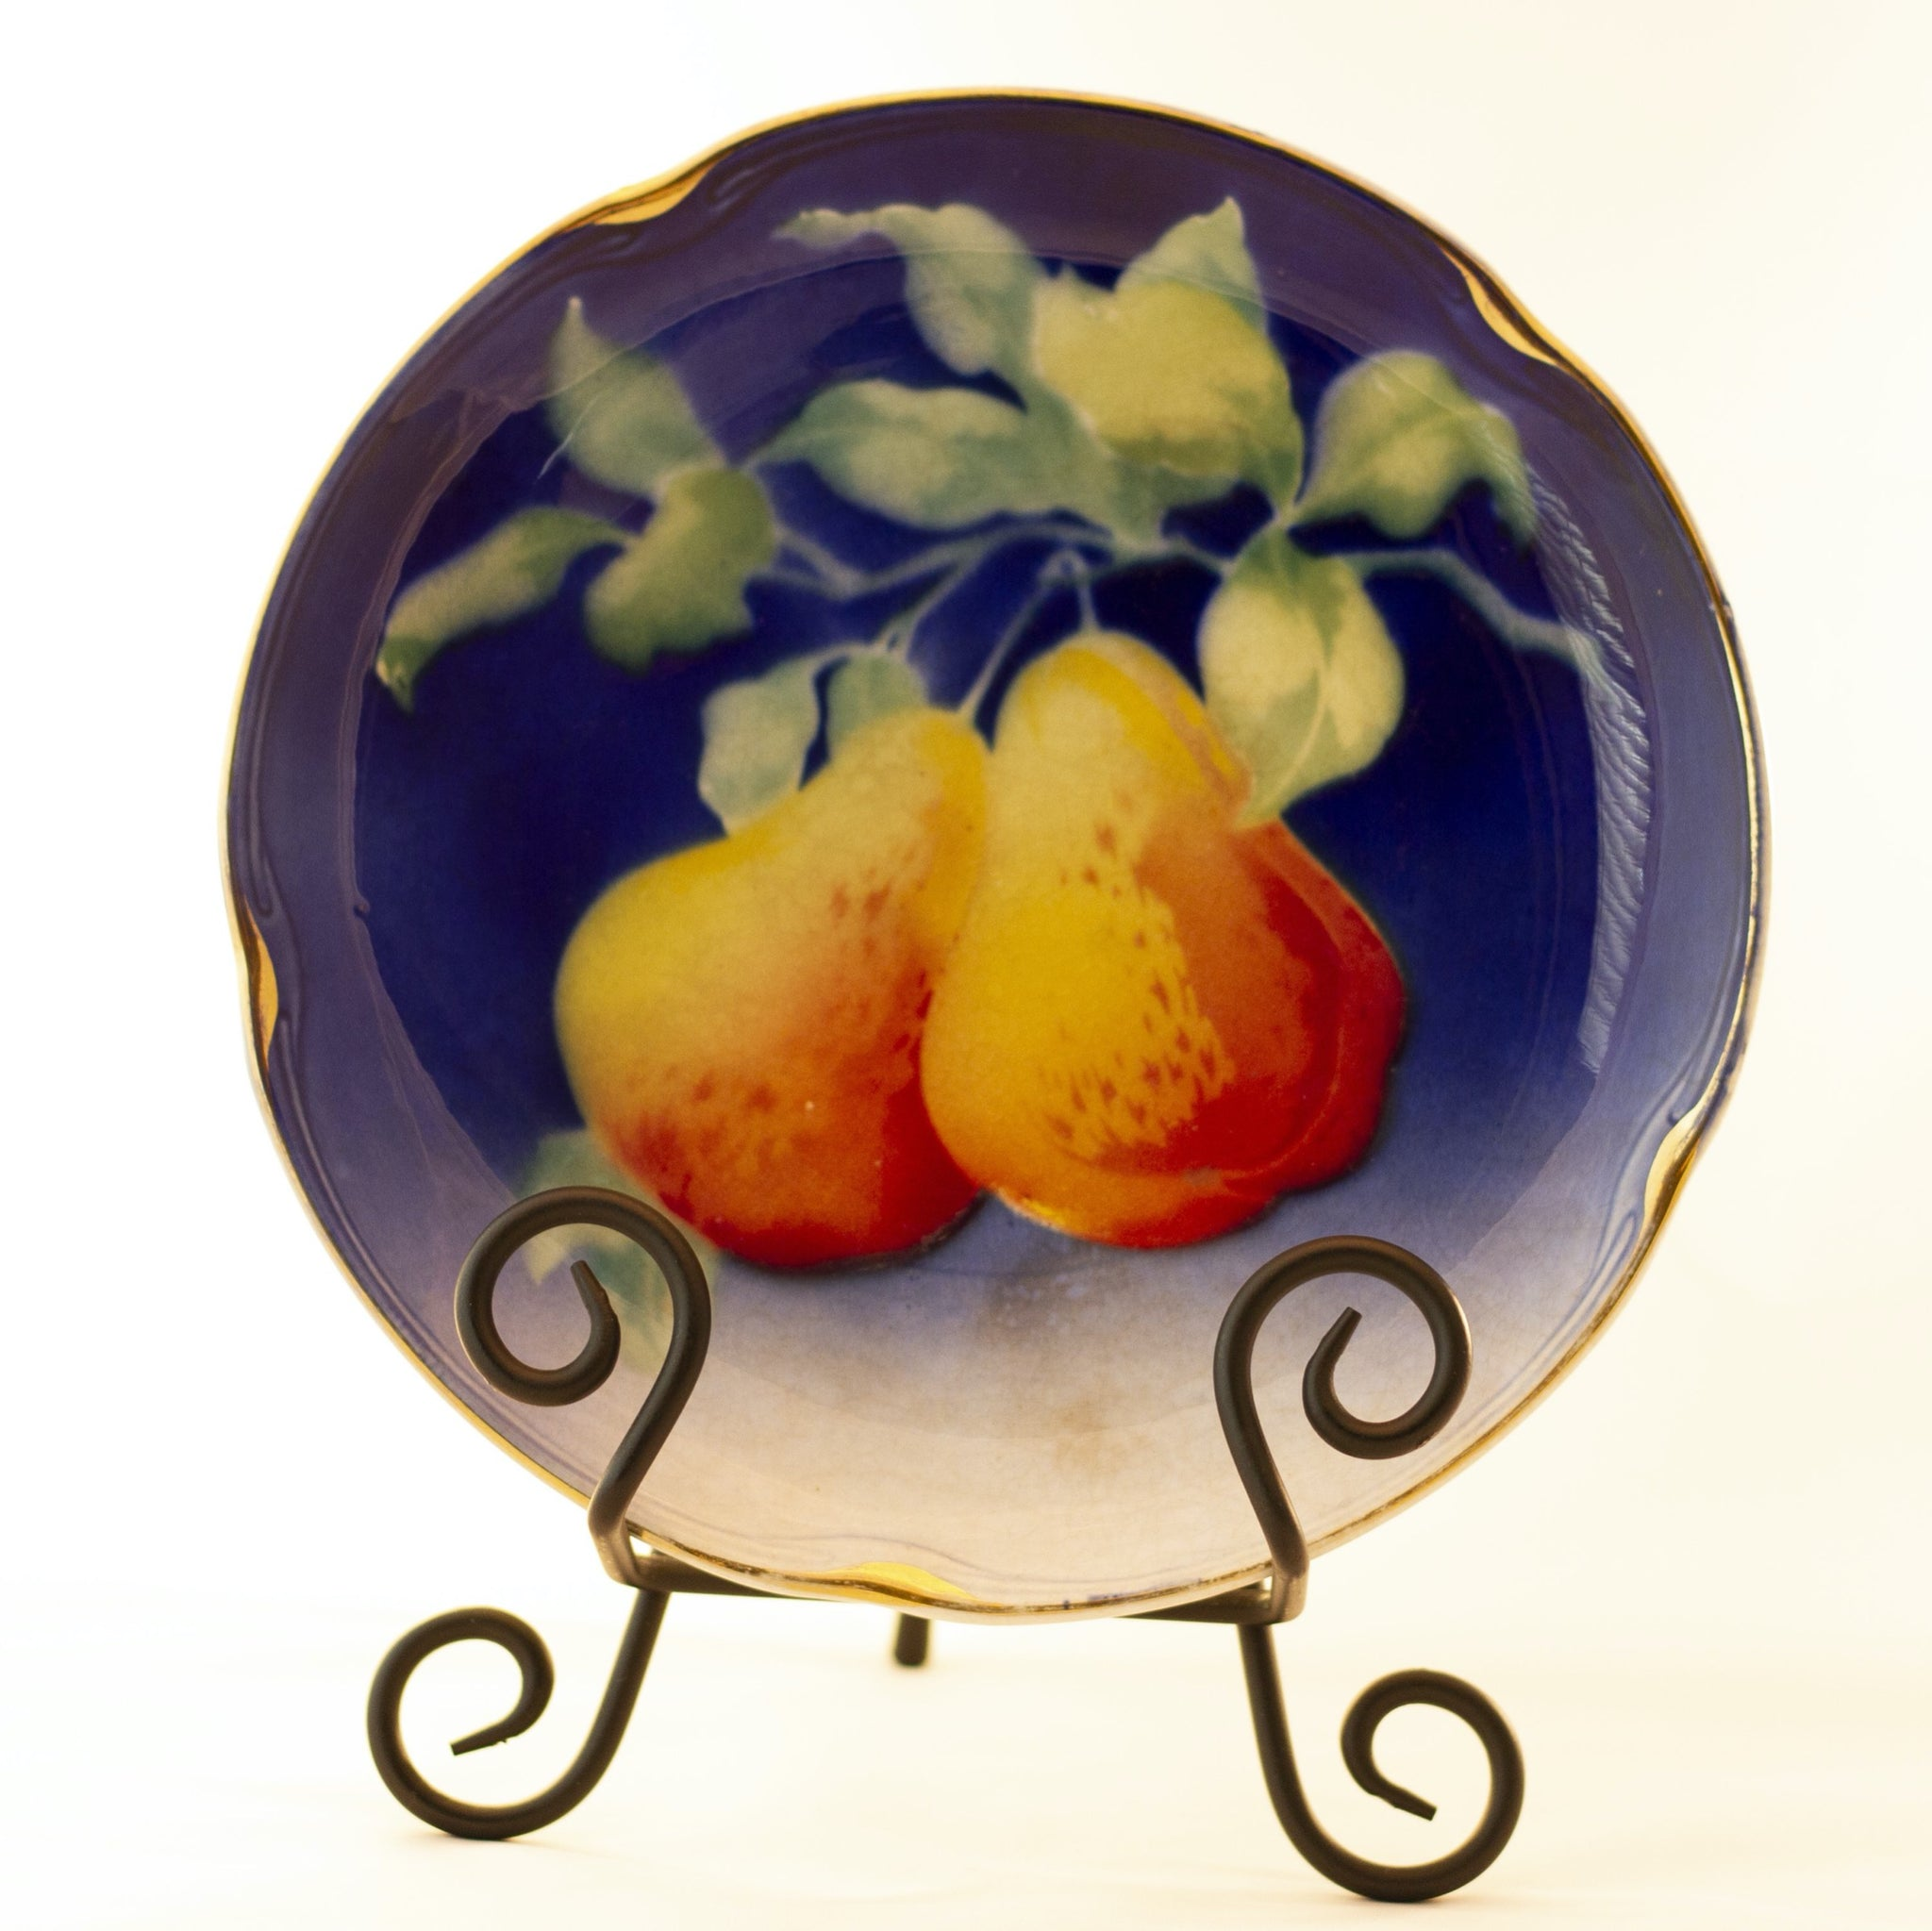 "K & G LUNÉVILLE FRENCH FAIENCE PLATE HAND PAINTED PEARS 8 ½"" Gold Gilt Rim Circa 1890"